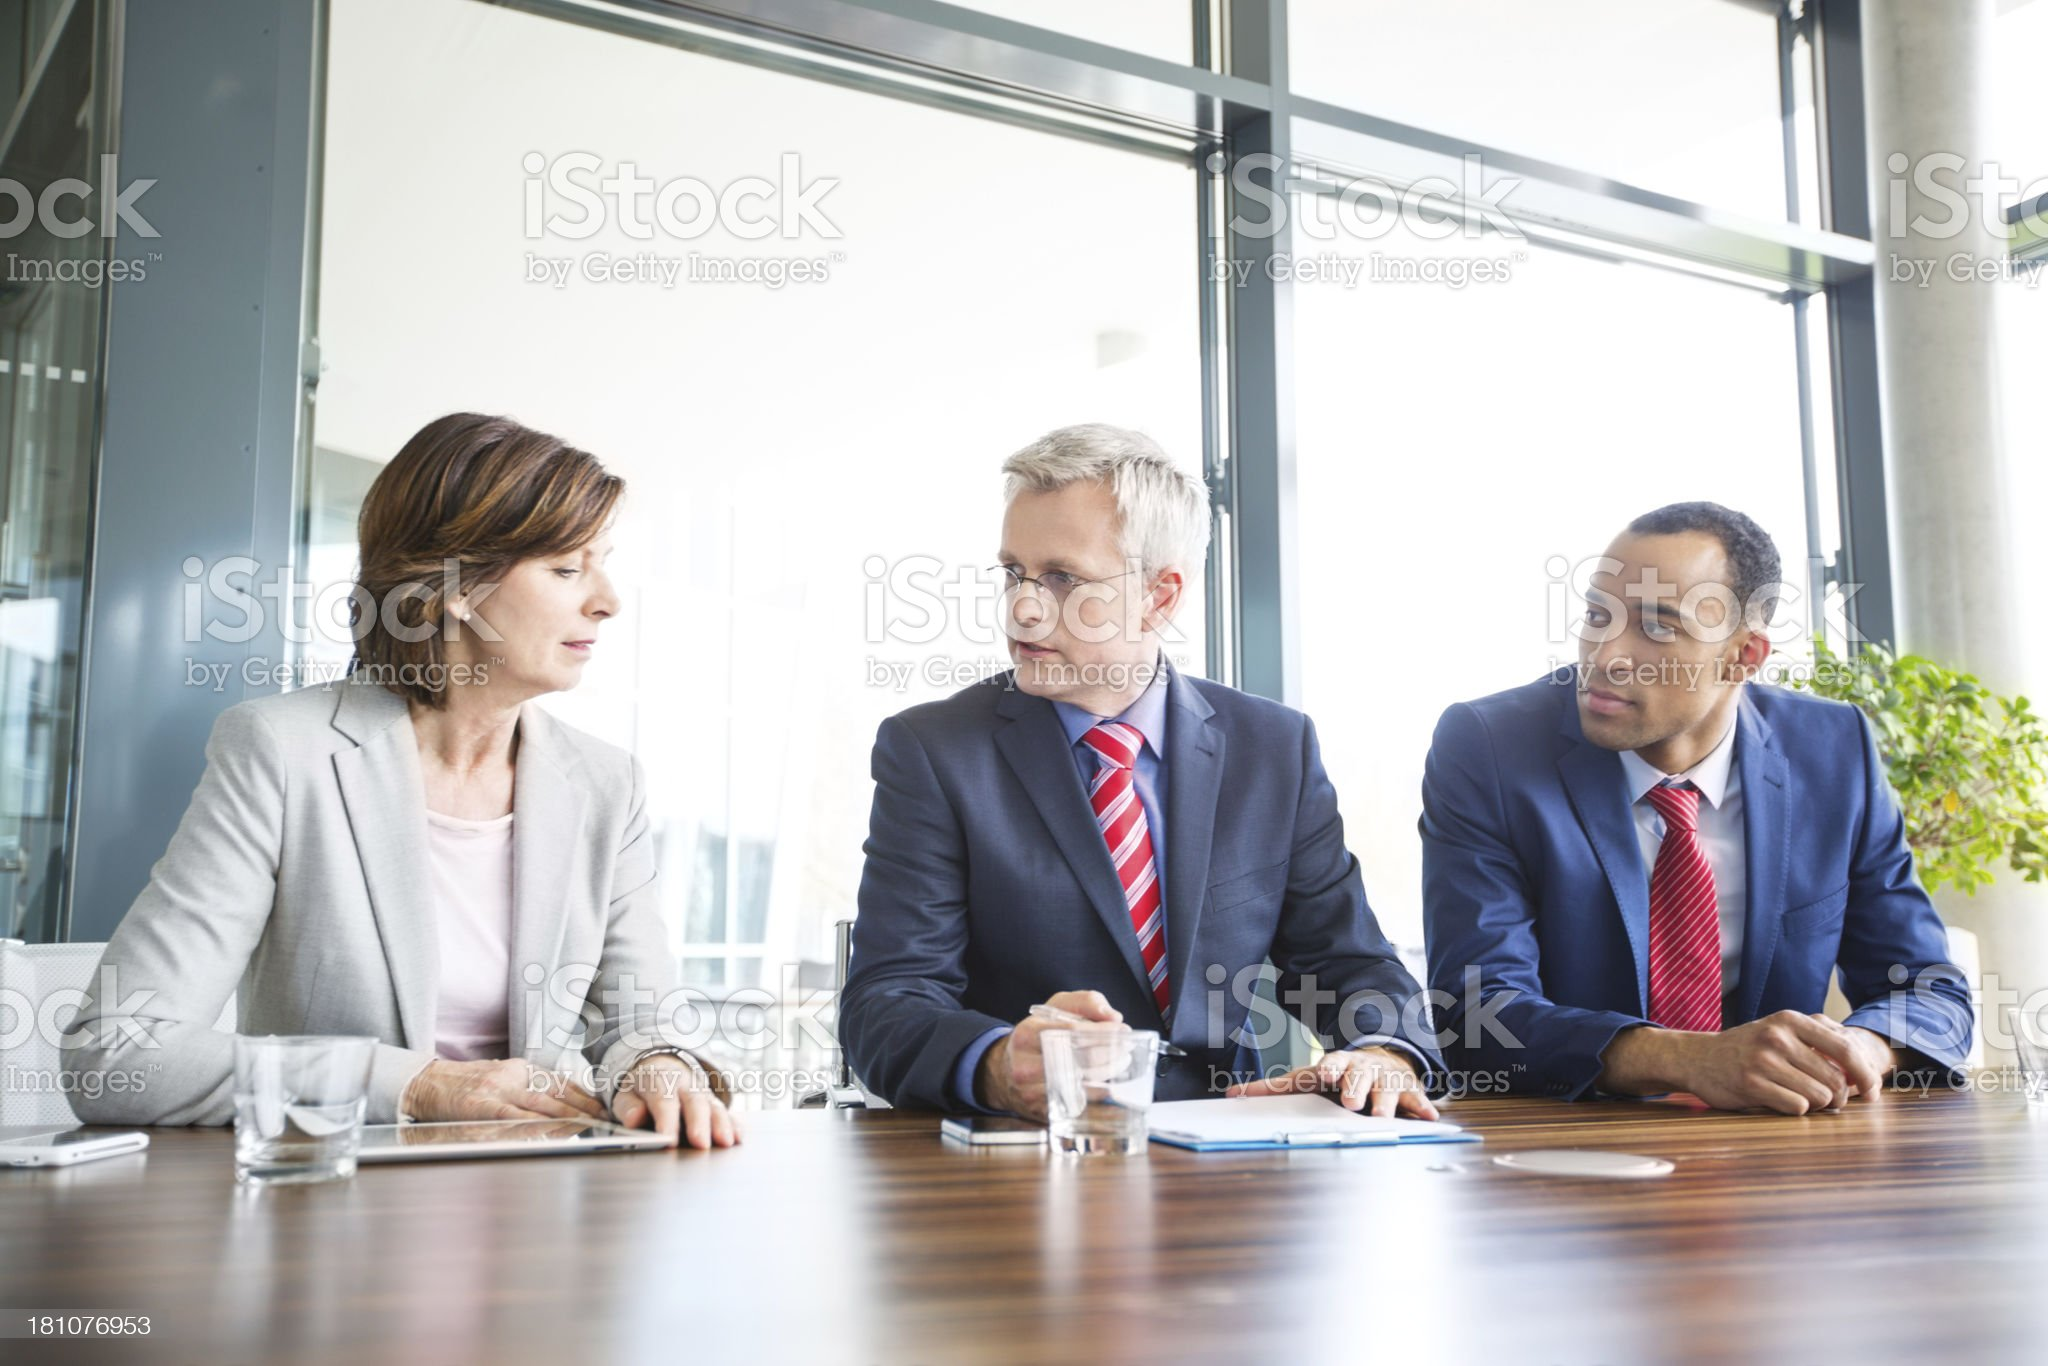 Business people at a meeting conversing royalty-free stock photo